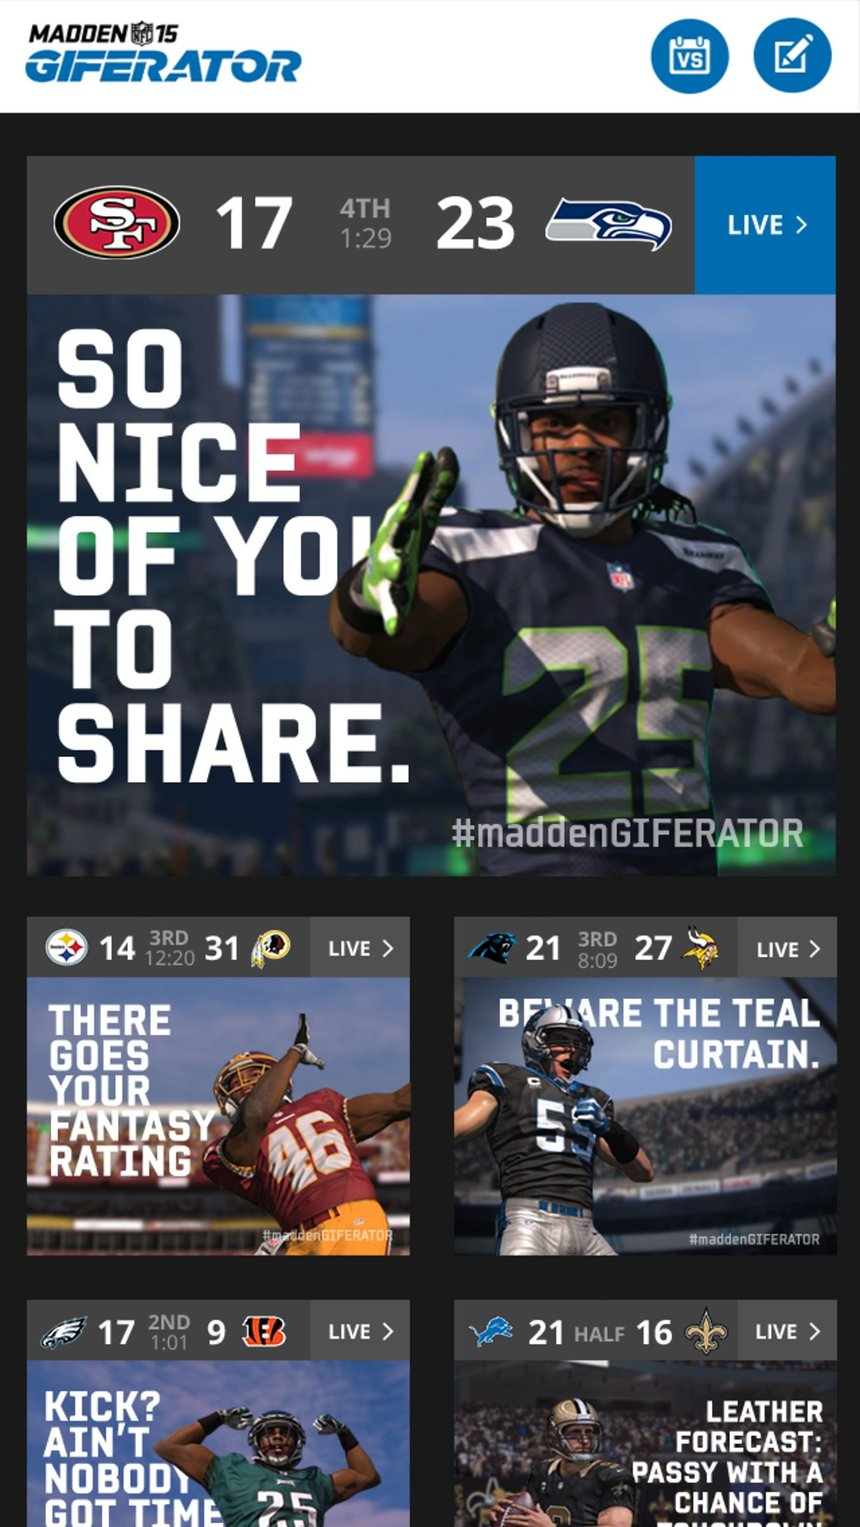 EA Sports Madden GIFERATOR: A Google Art, Copy & Code Project